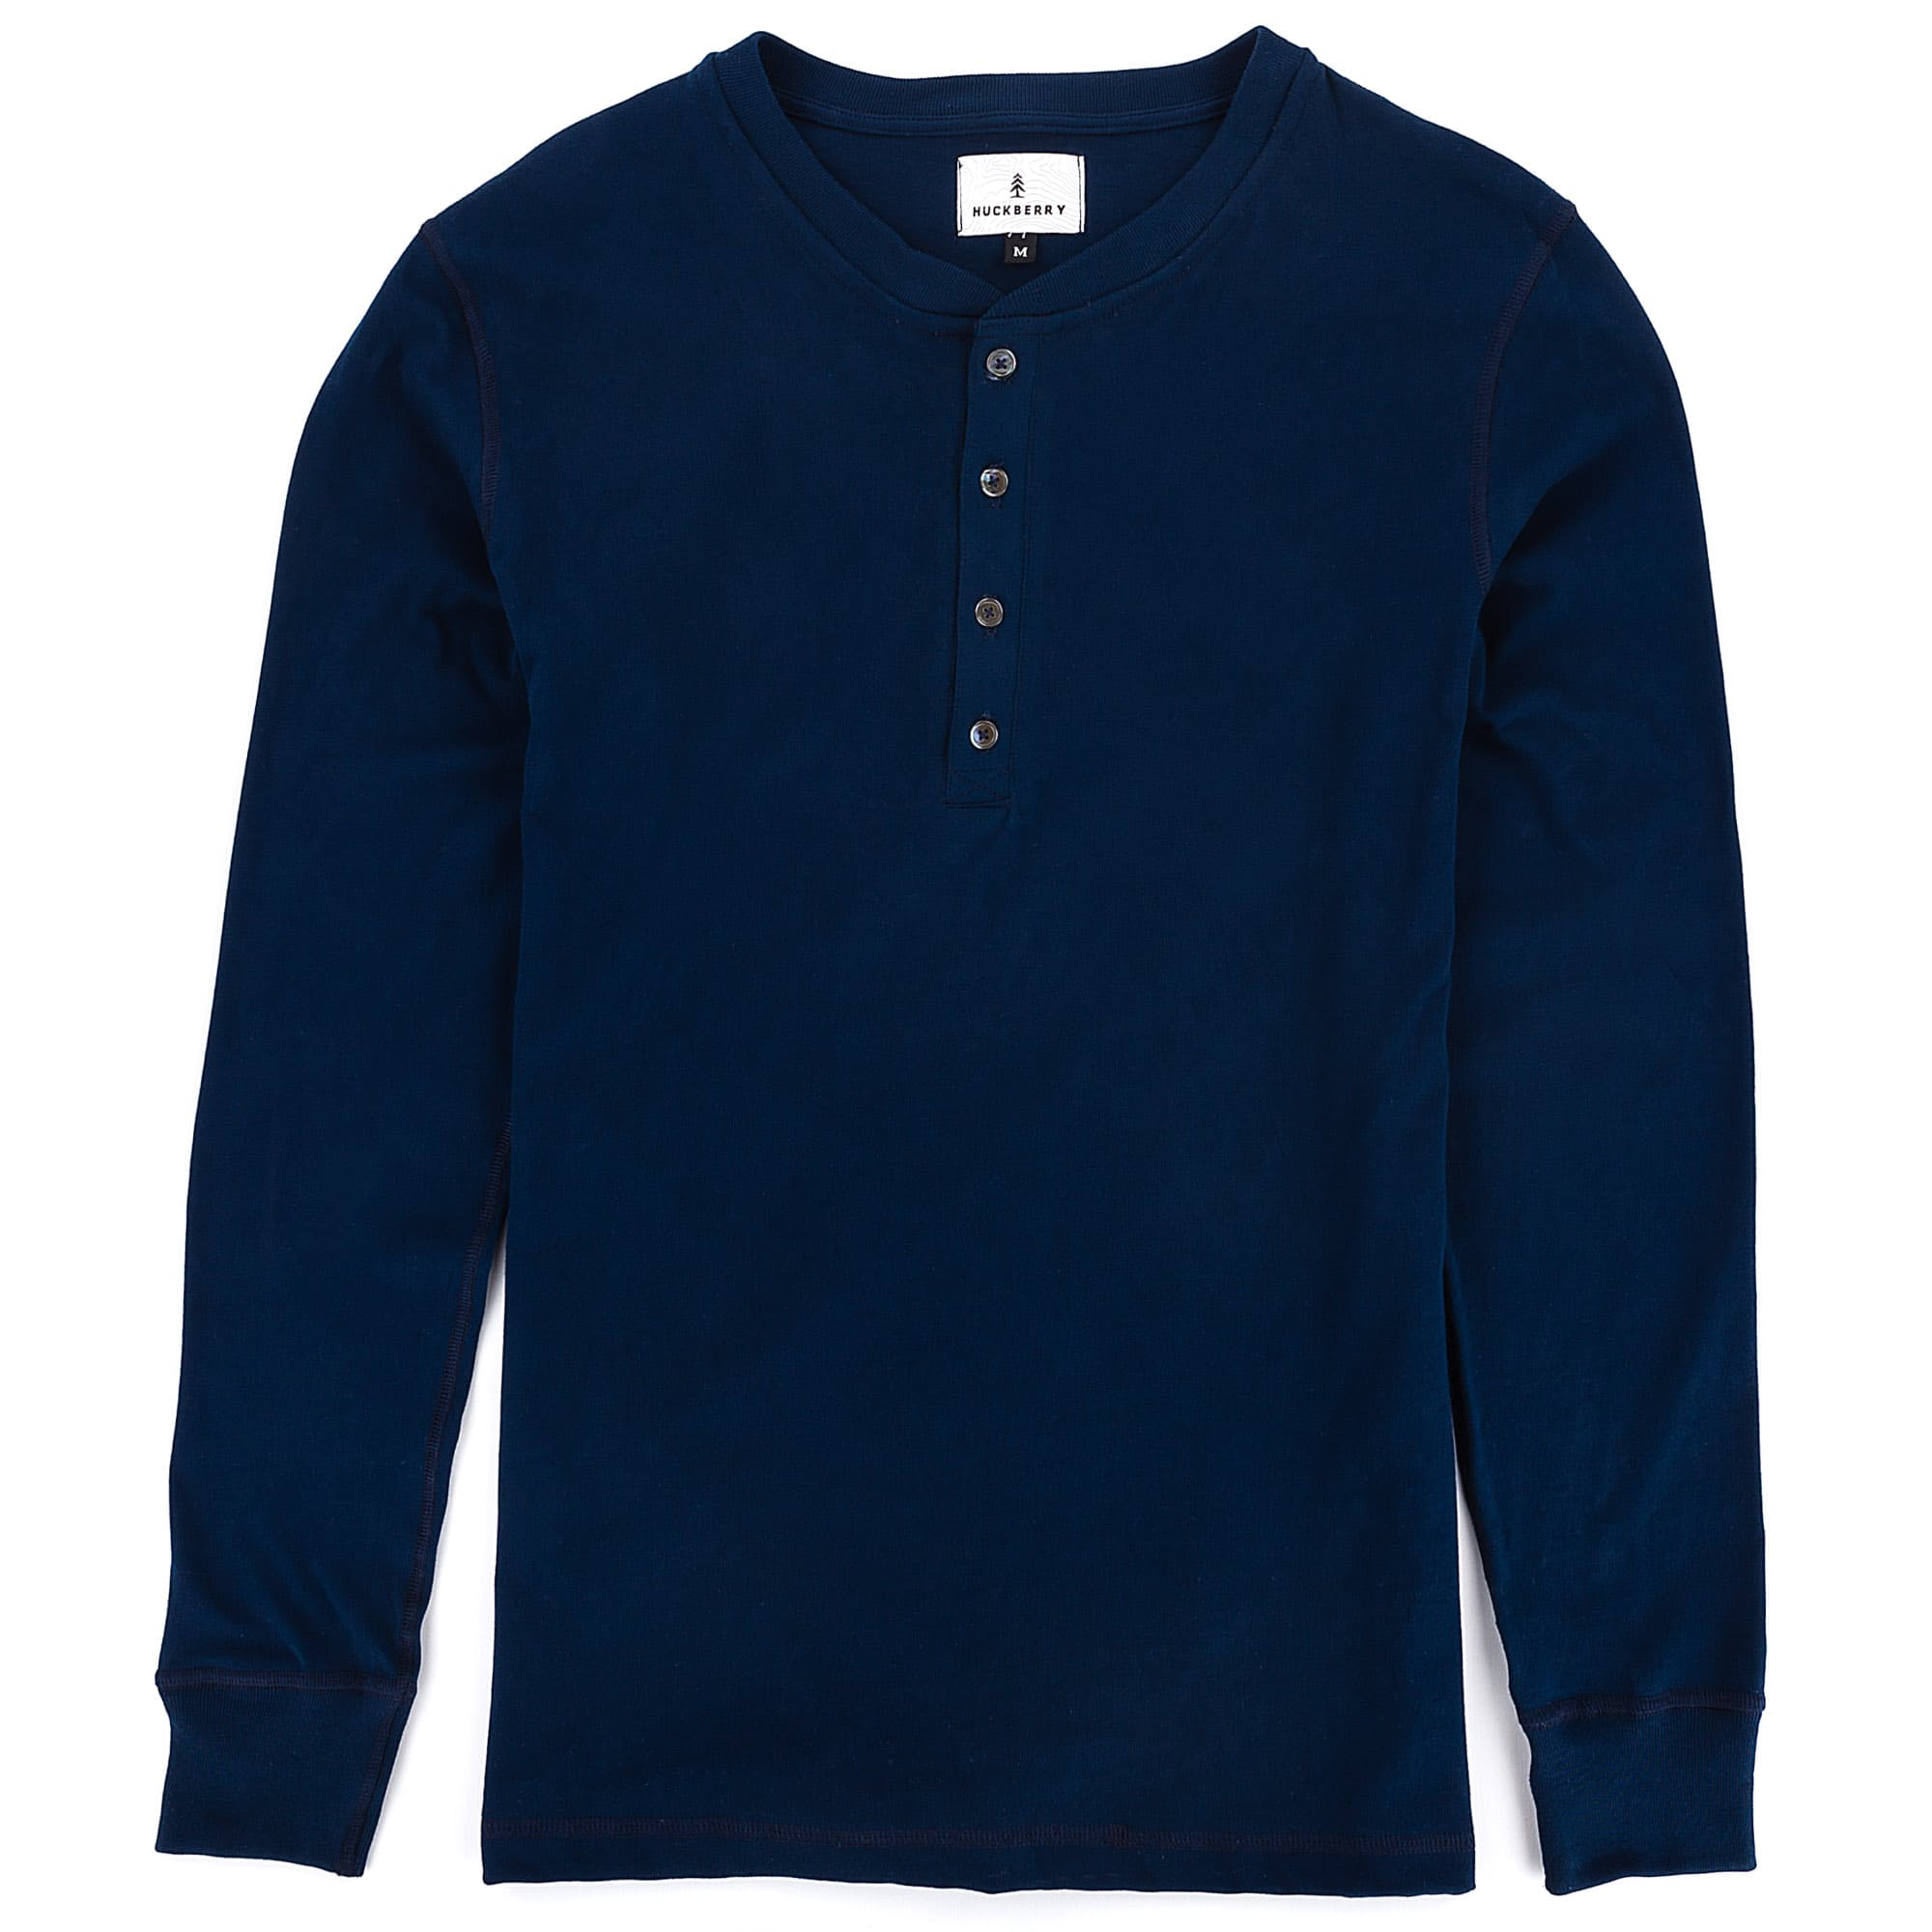 7yy4yv2gqa huckberry the huckberry henley 0 original